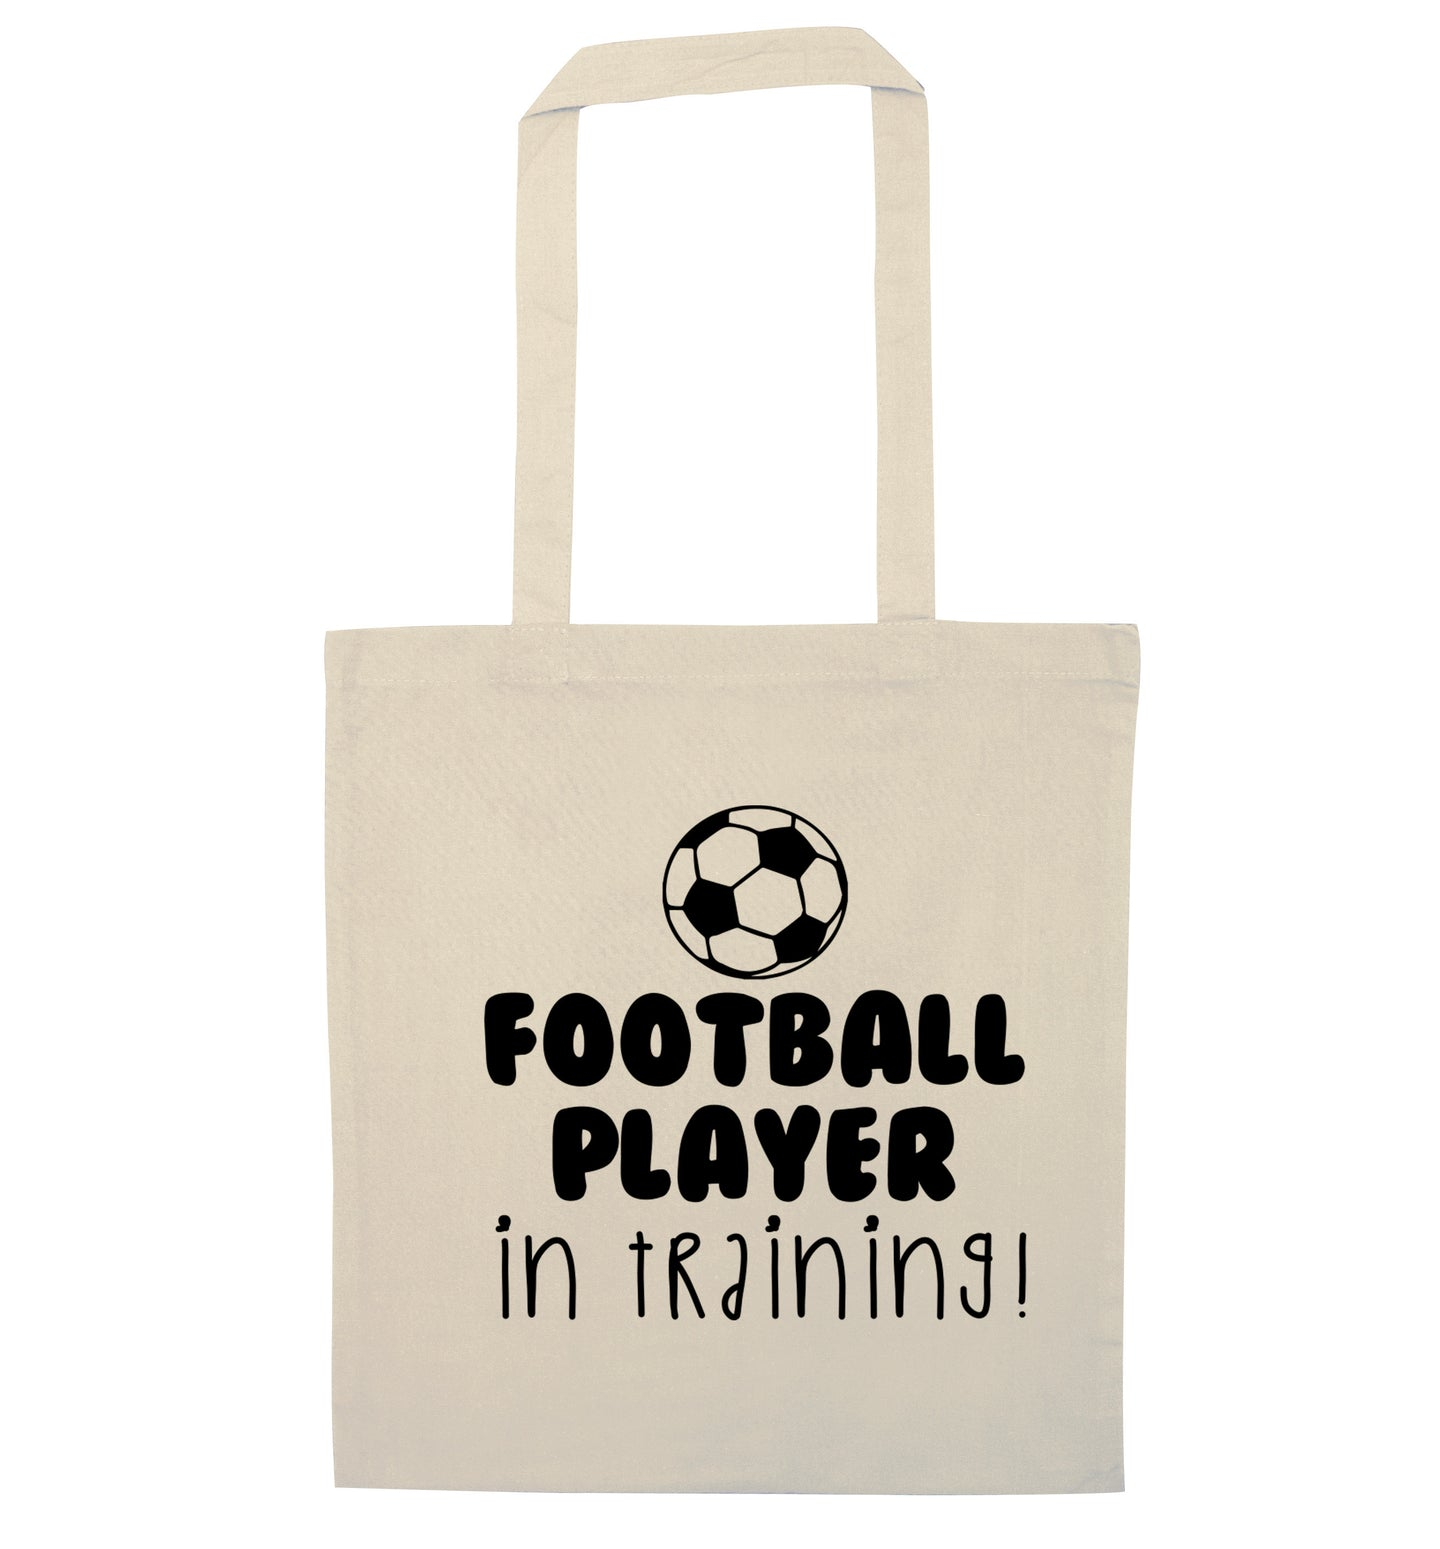 Football player in training natural tote bag